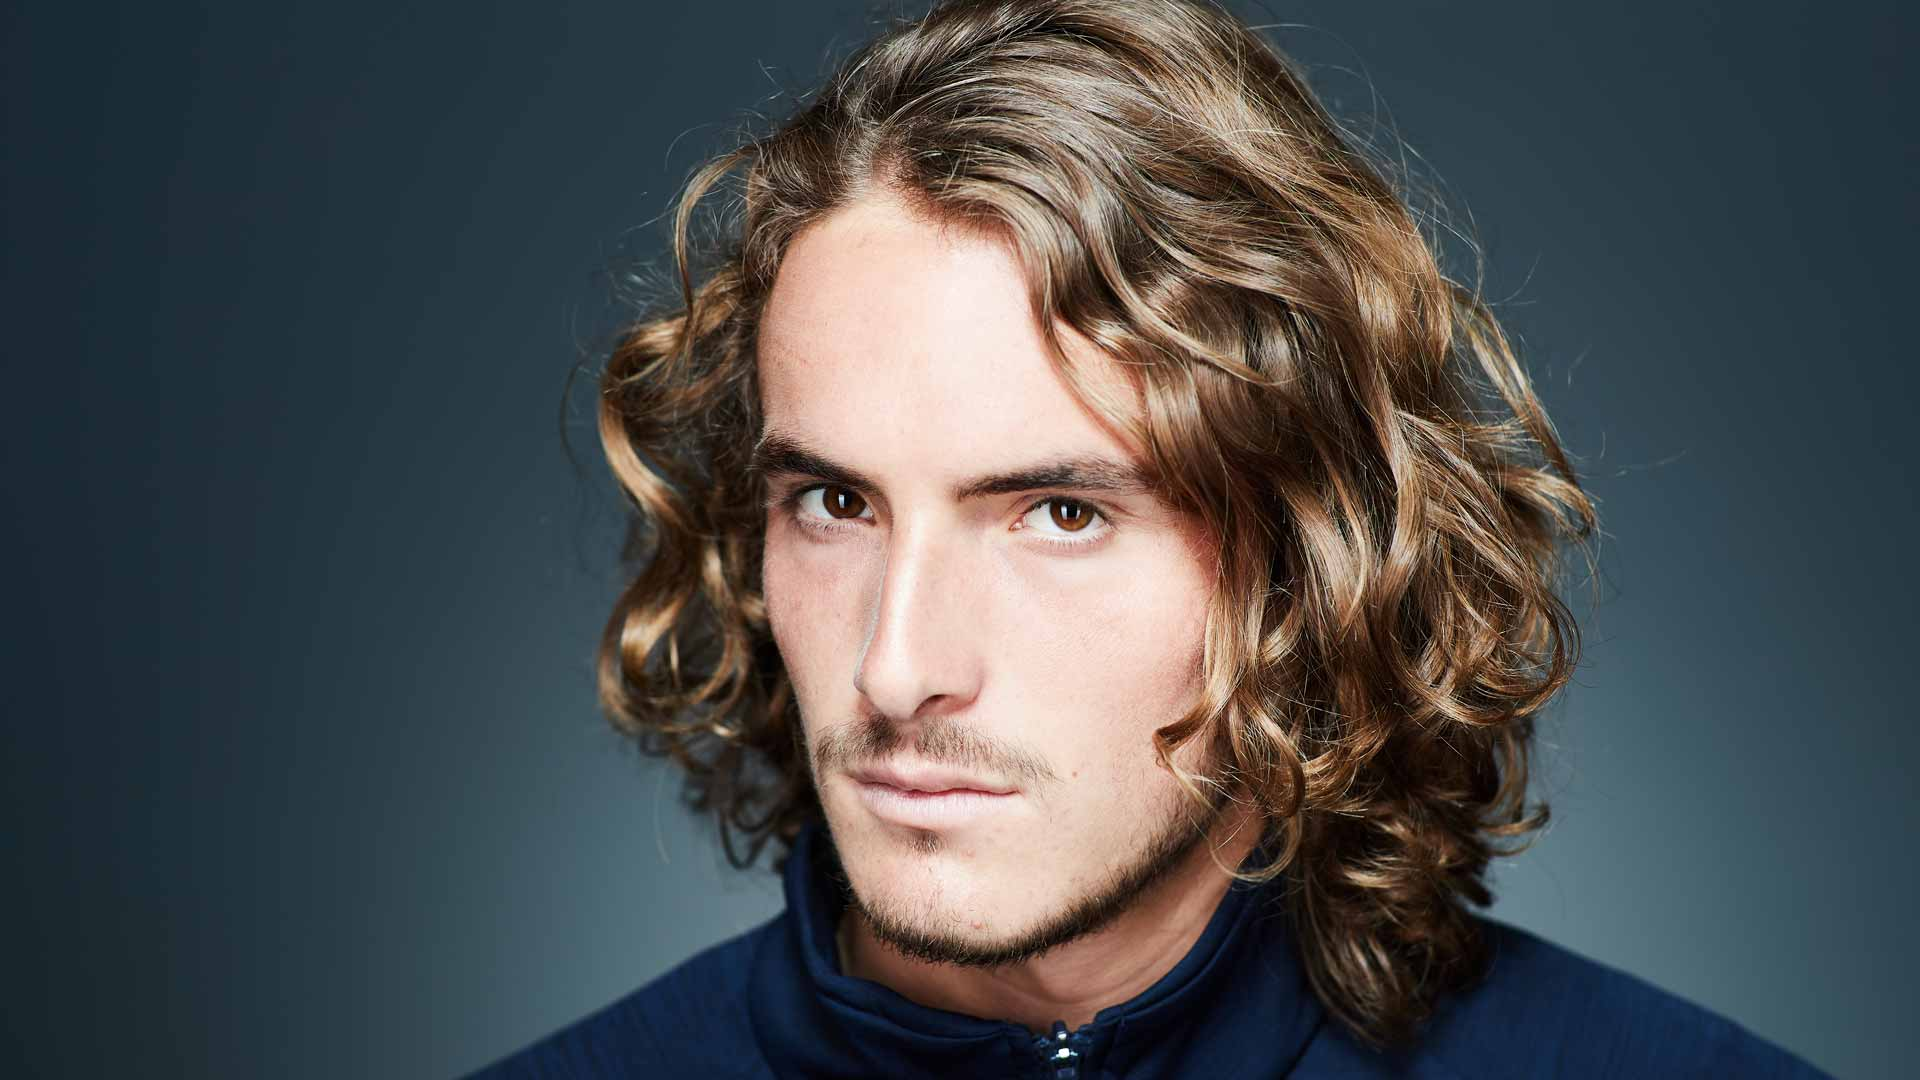 <a href='https://www.atptour.com/en/players/stefanos-tsitsipas/te51/overview'>Stefanos Tsitsipas</a> at the 2019 ATP Tour photoshoot.